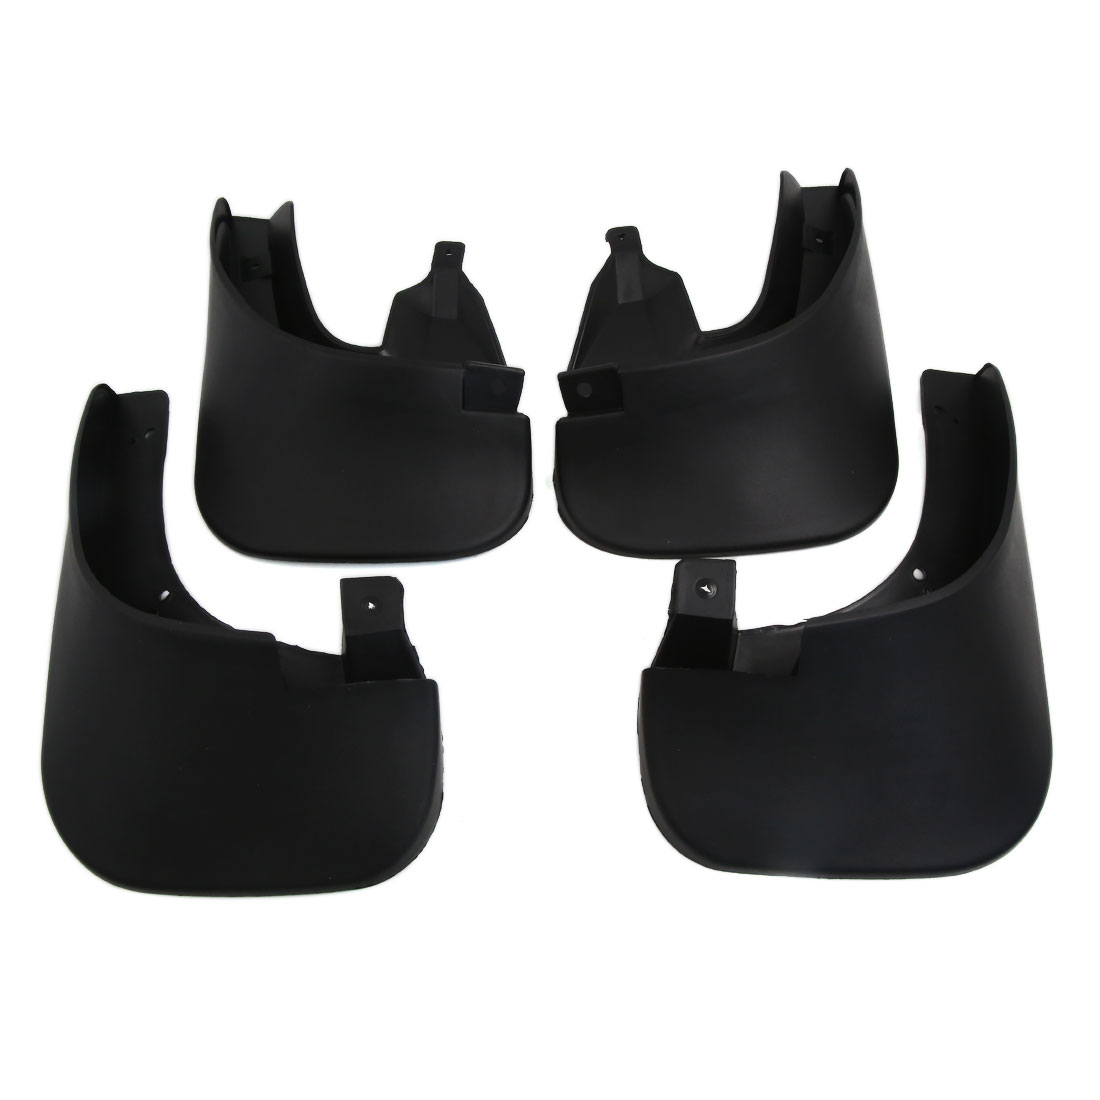 4PCS Black Front Rear Splash Guards Plastic Mud Flaps Set for Tucson 13- 15